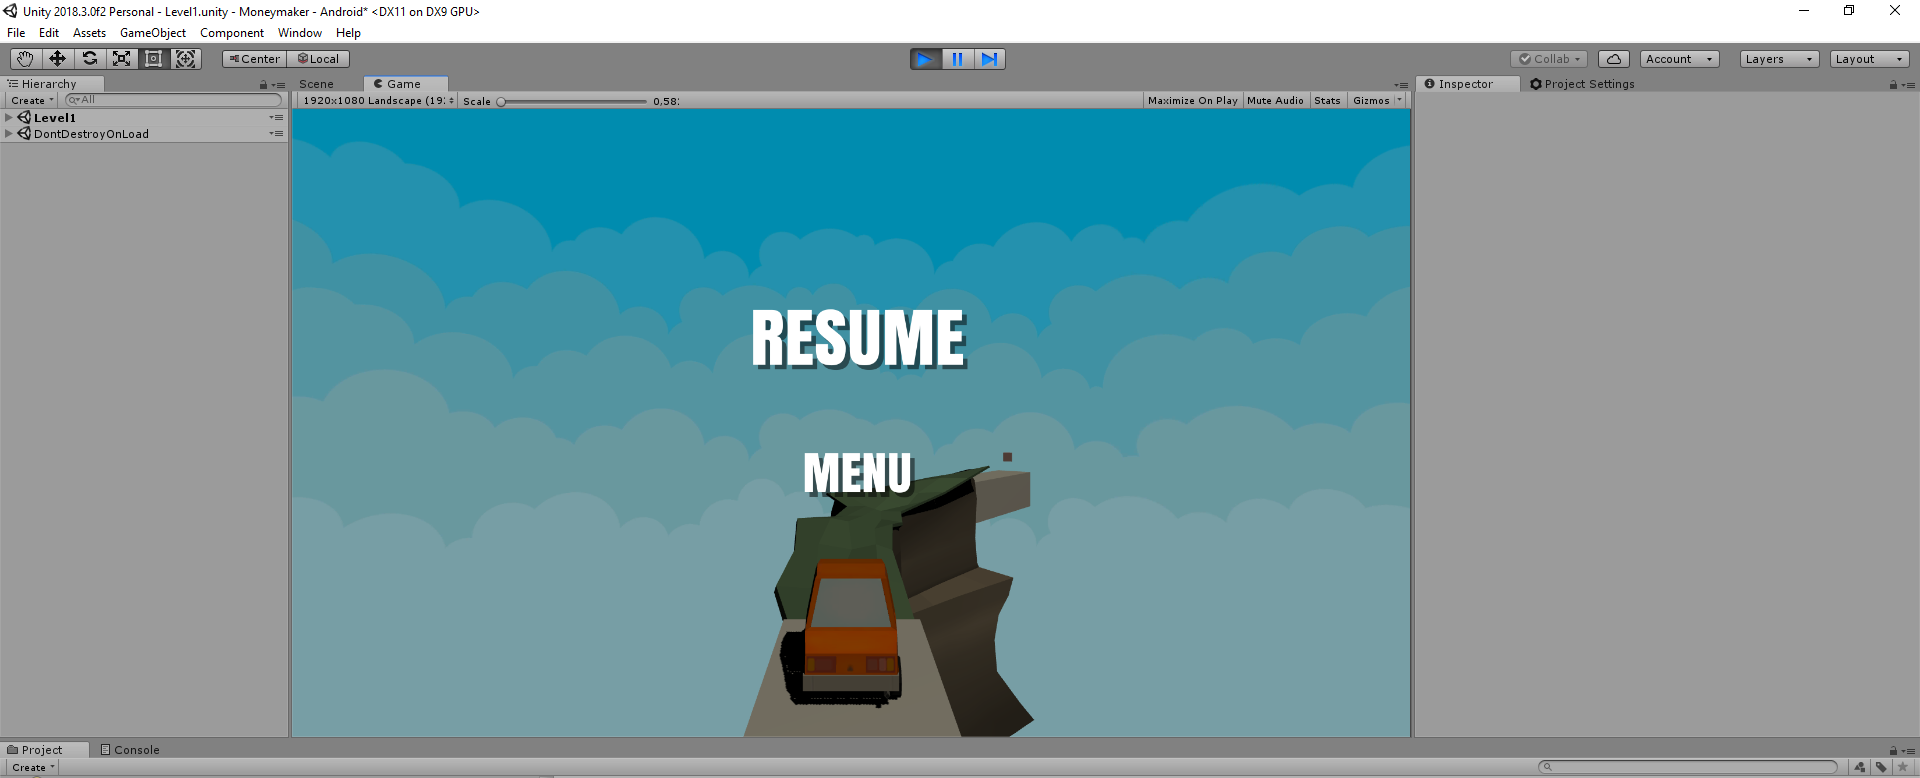 Help! Unity does not include all of my UI elements in the